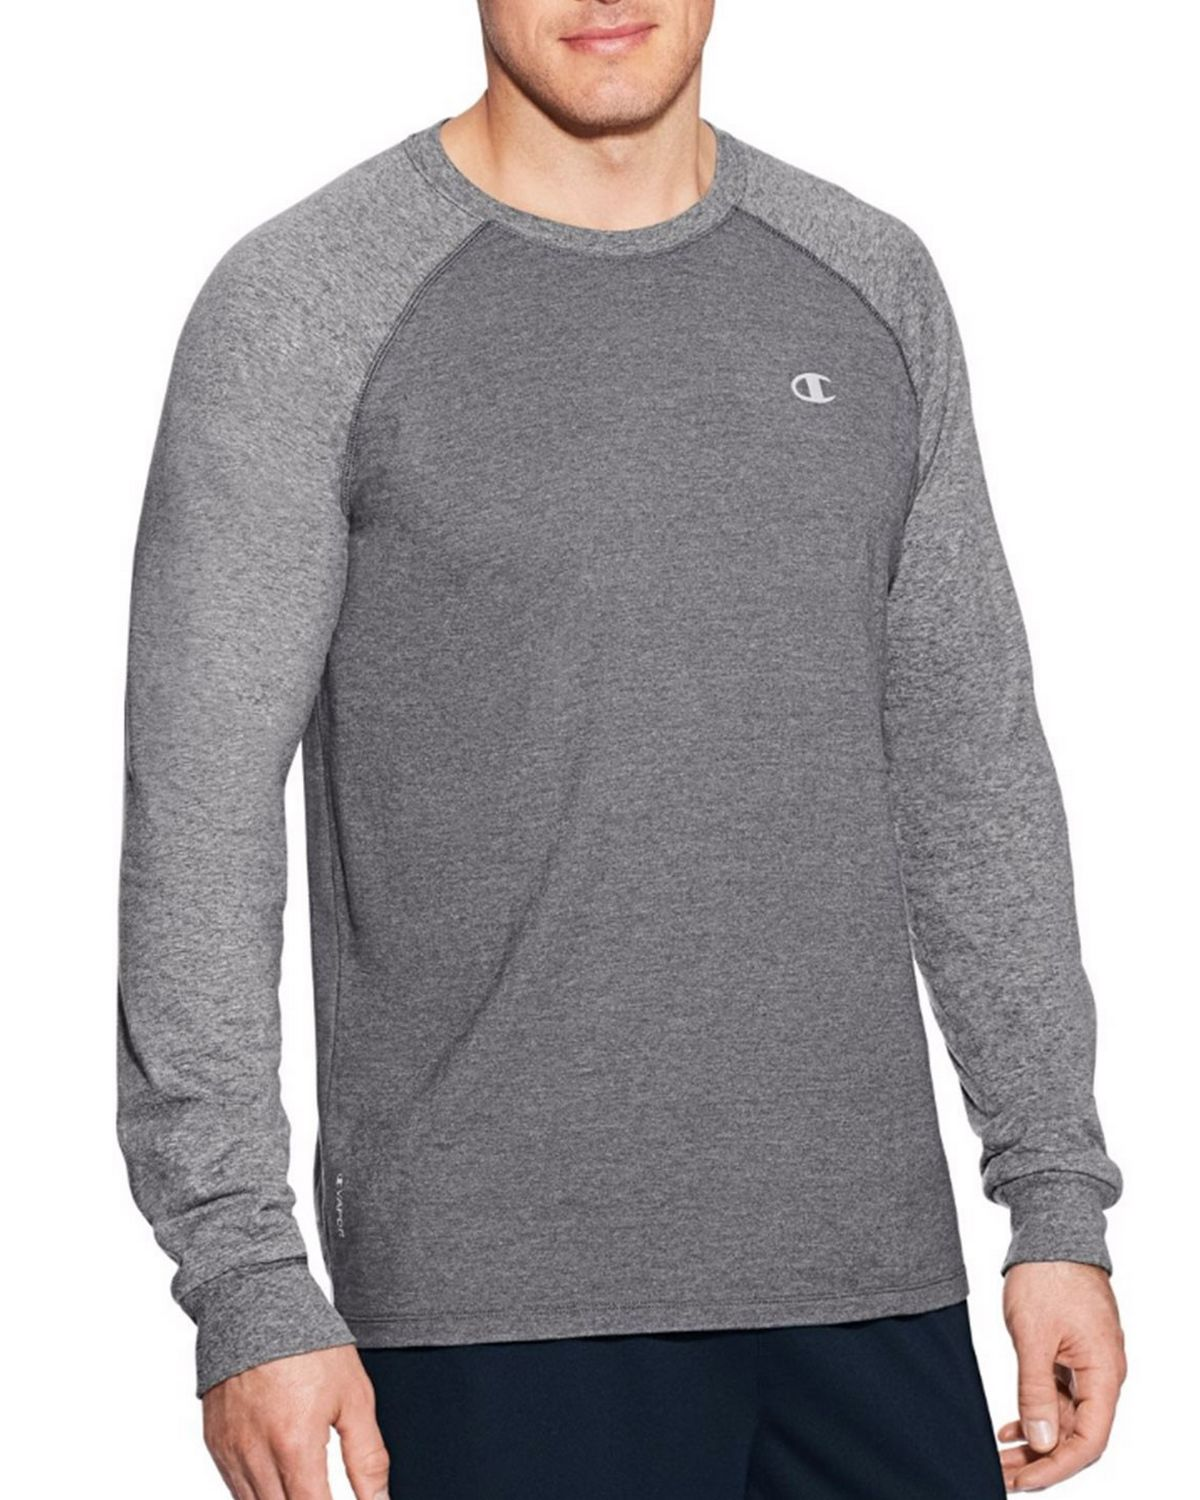 Champion T9937 Vapor Mens Cotton Tee - Granite Heather/Oxford Grey - M T9937